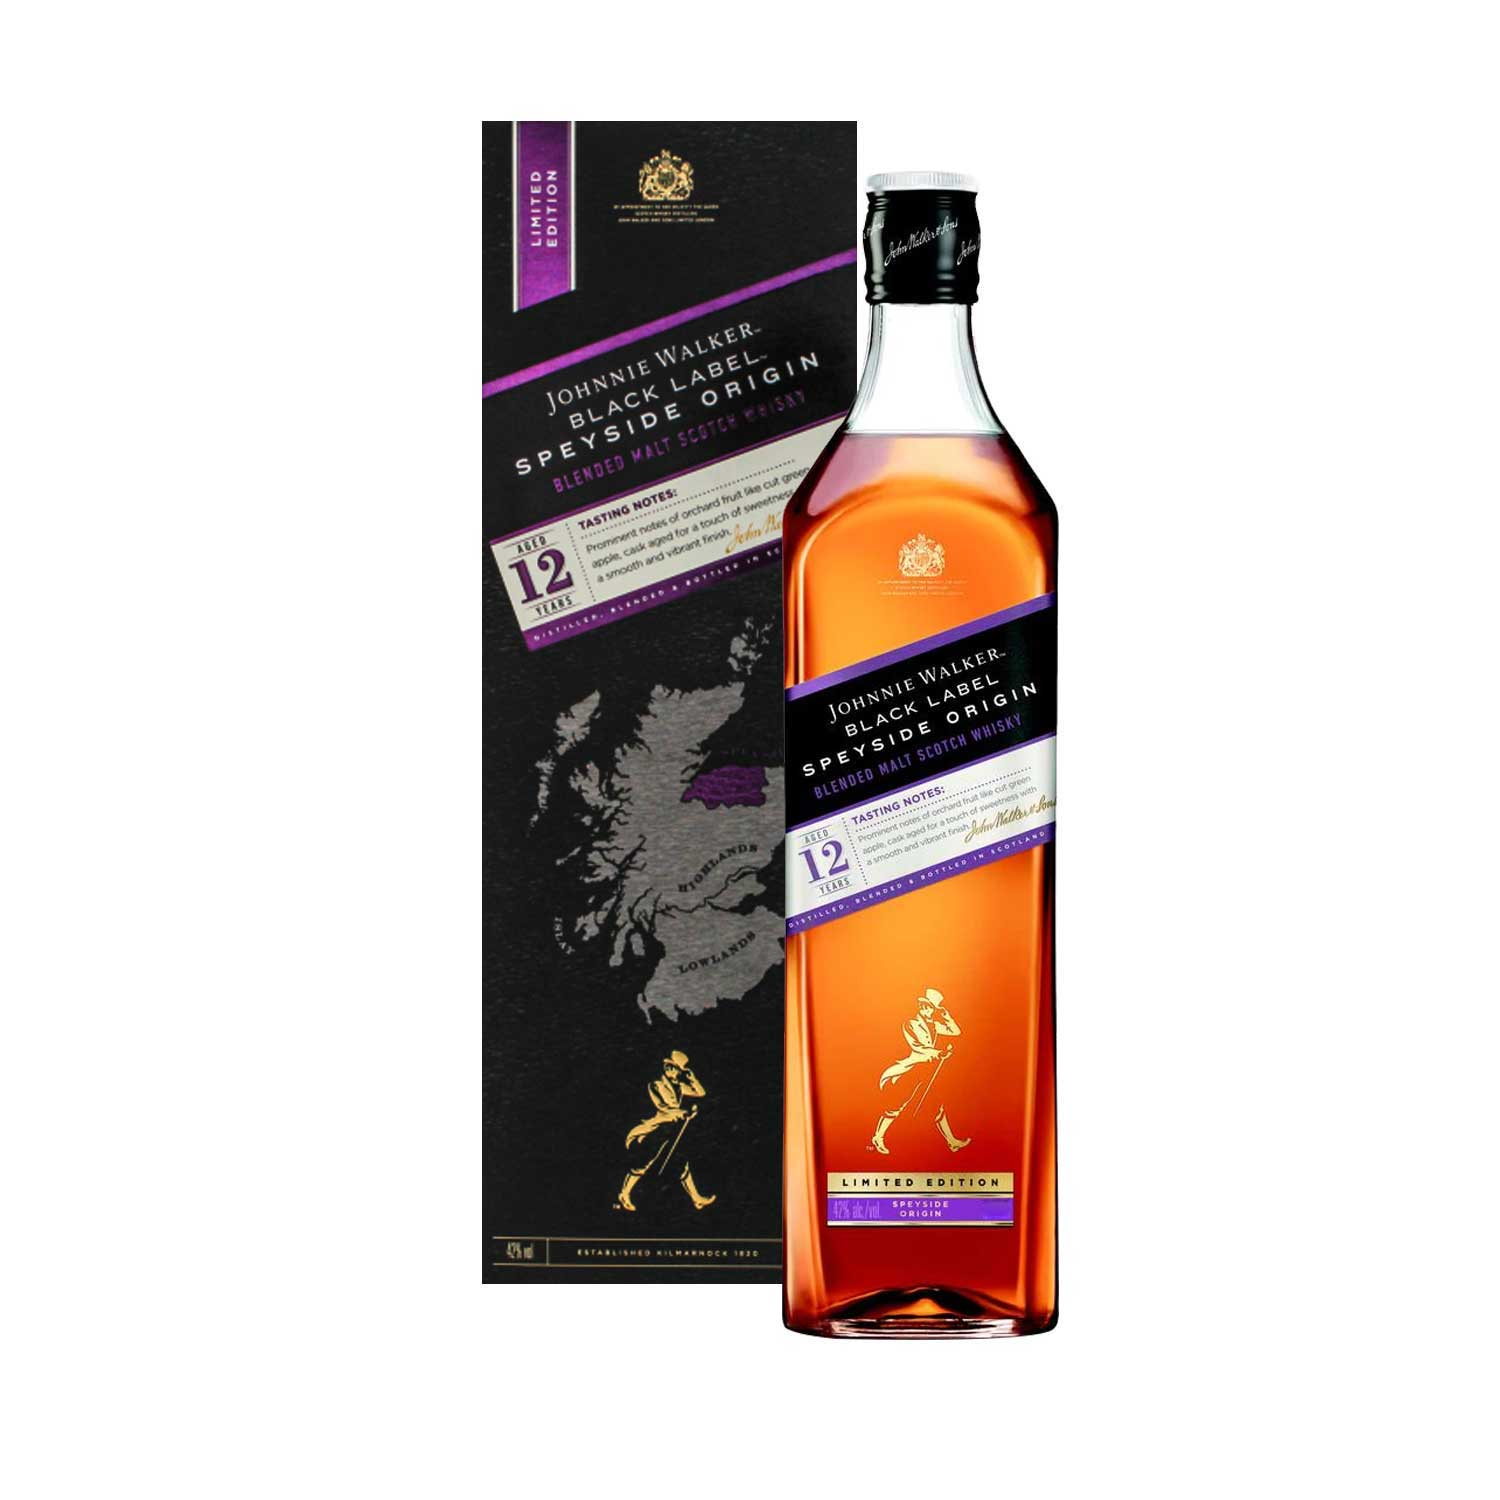 JOHNNIE WALKER BLACK LABEL SPEYSIDE ORIGIN, 1L